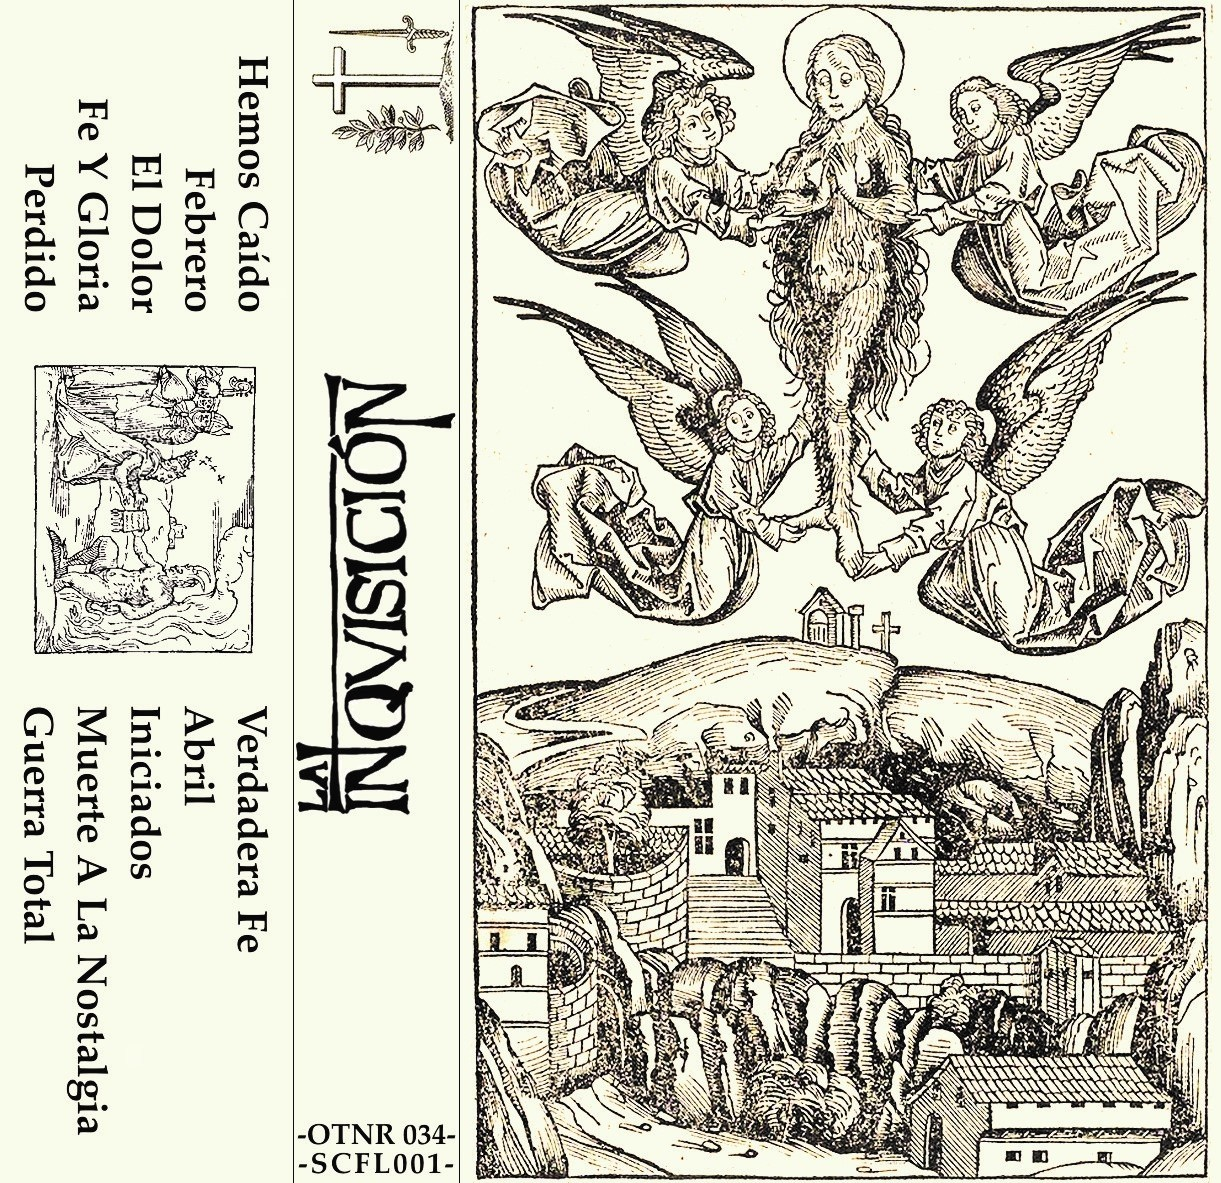 La Inquisición - s/t Tape